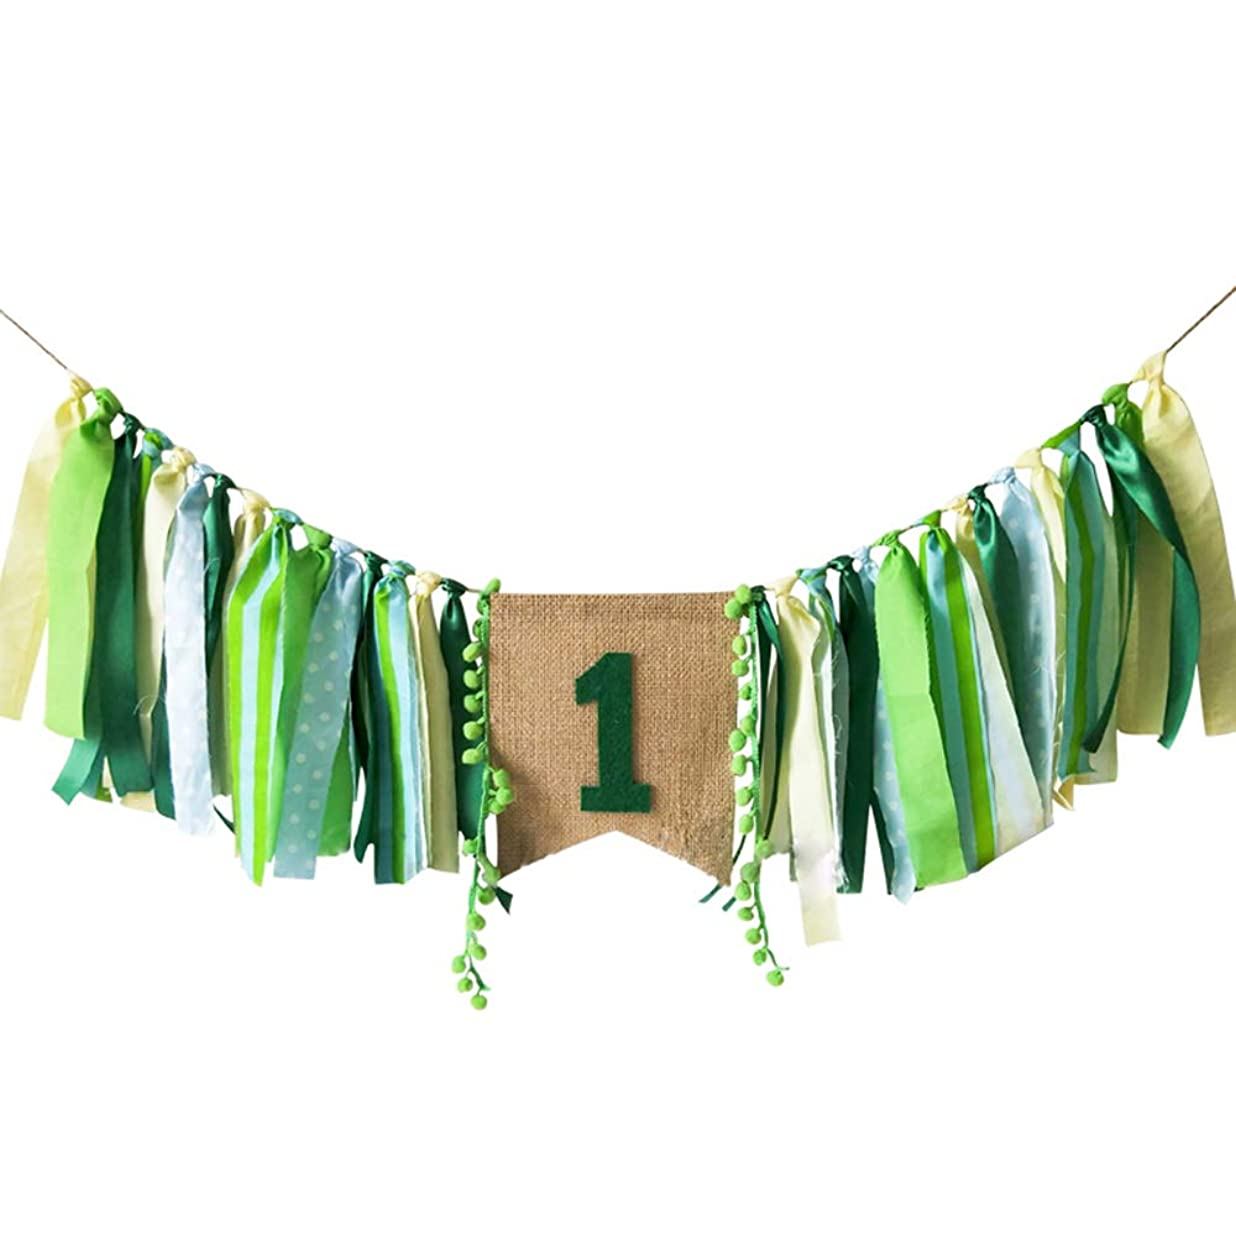 Baby Birthday Decoration - 1st Birthday Baby High Chair Banner Chair Tutu Skirt Decoration for Birthday Party Supplies (Green) fklcpxkq6